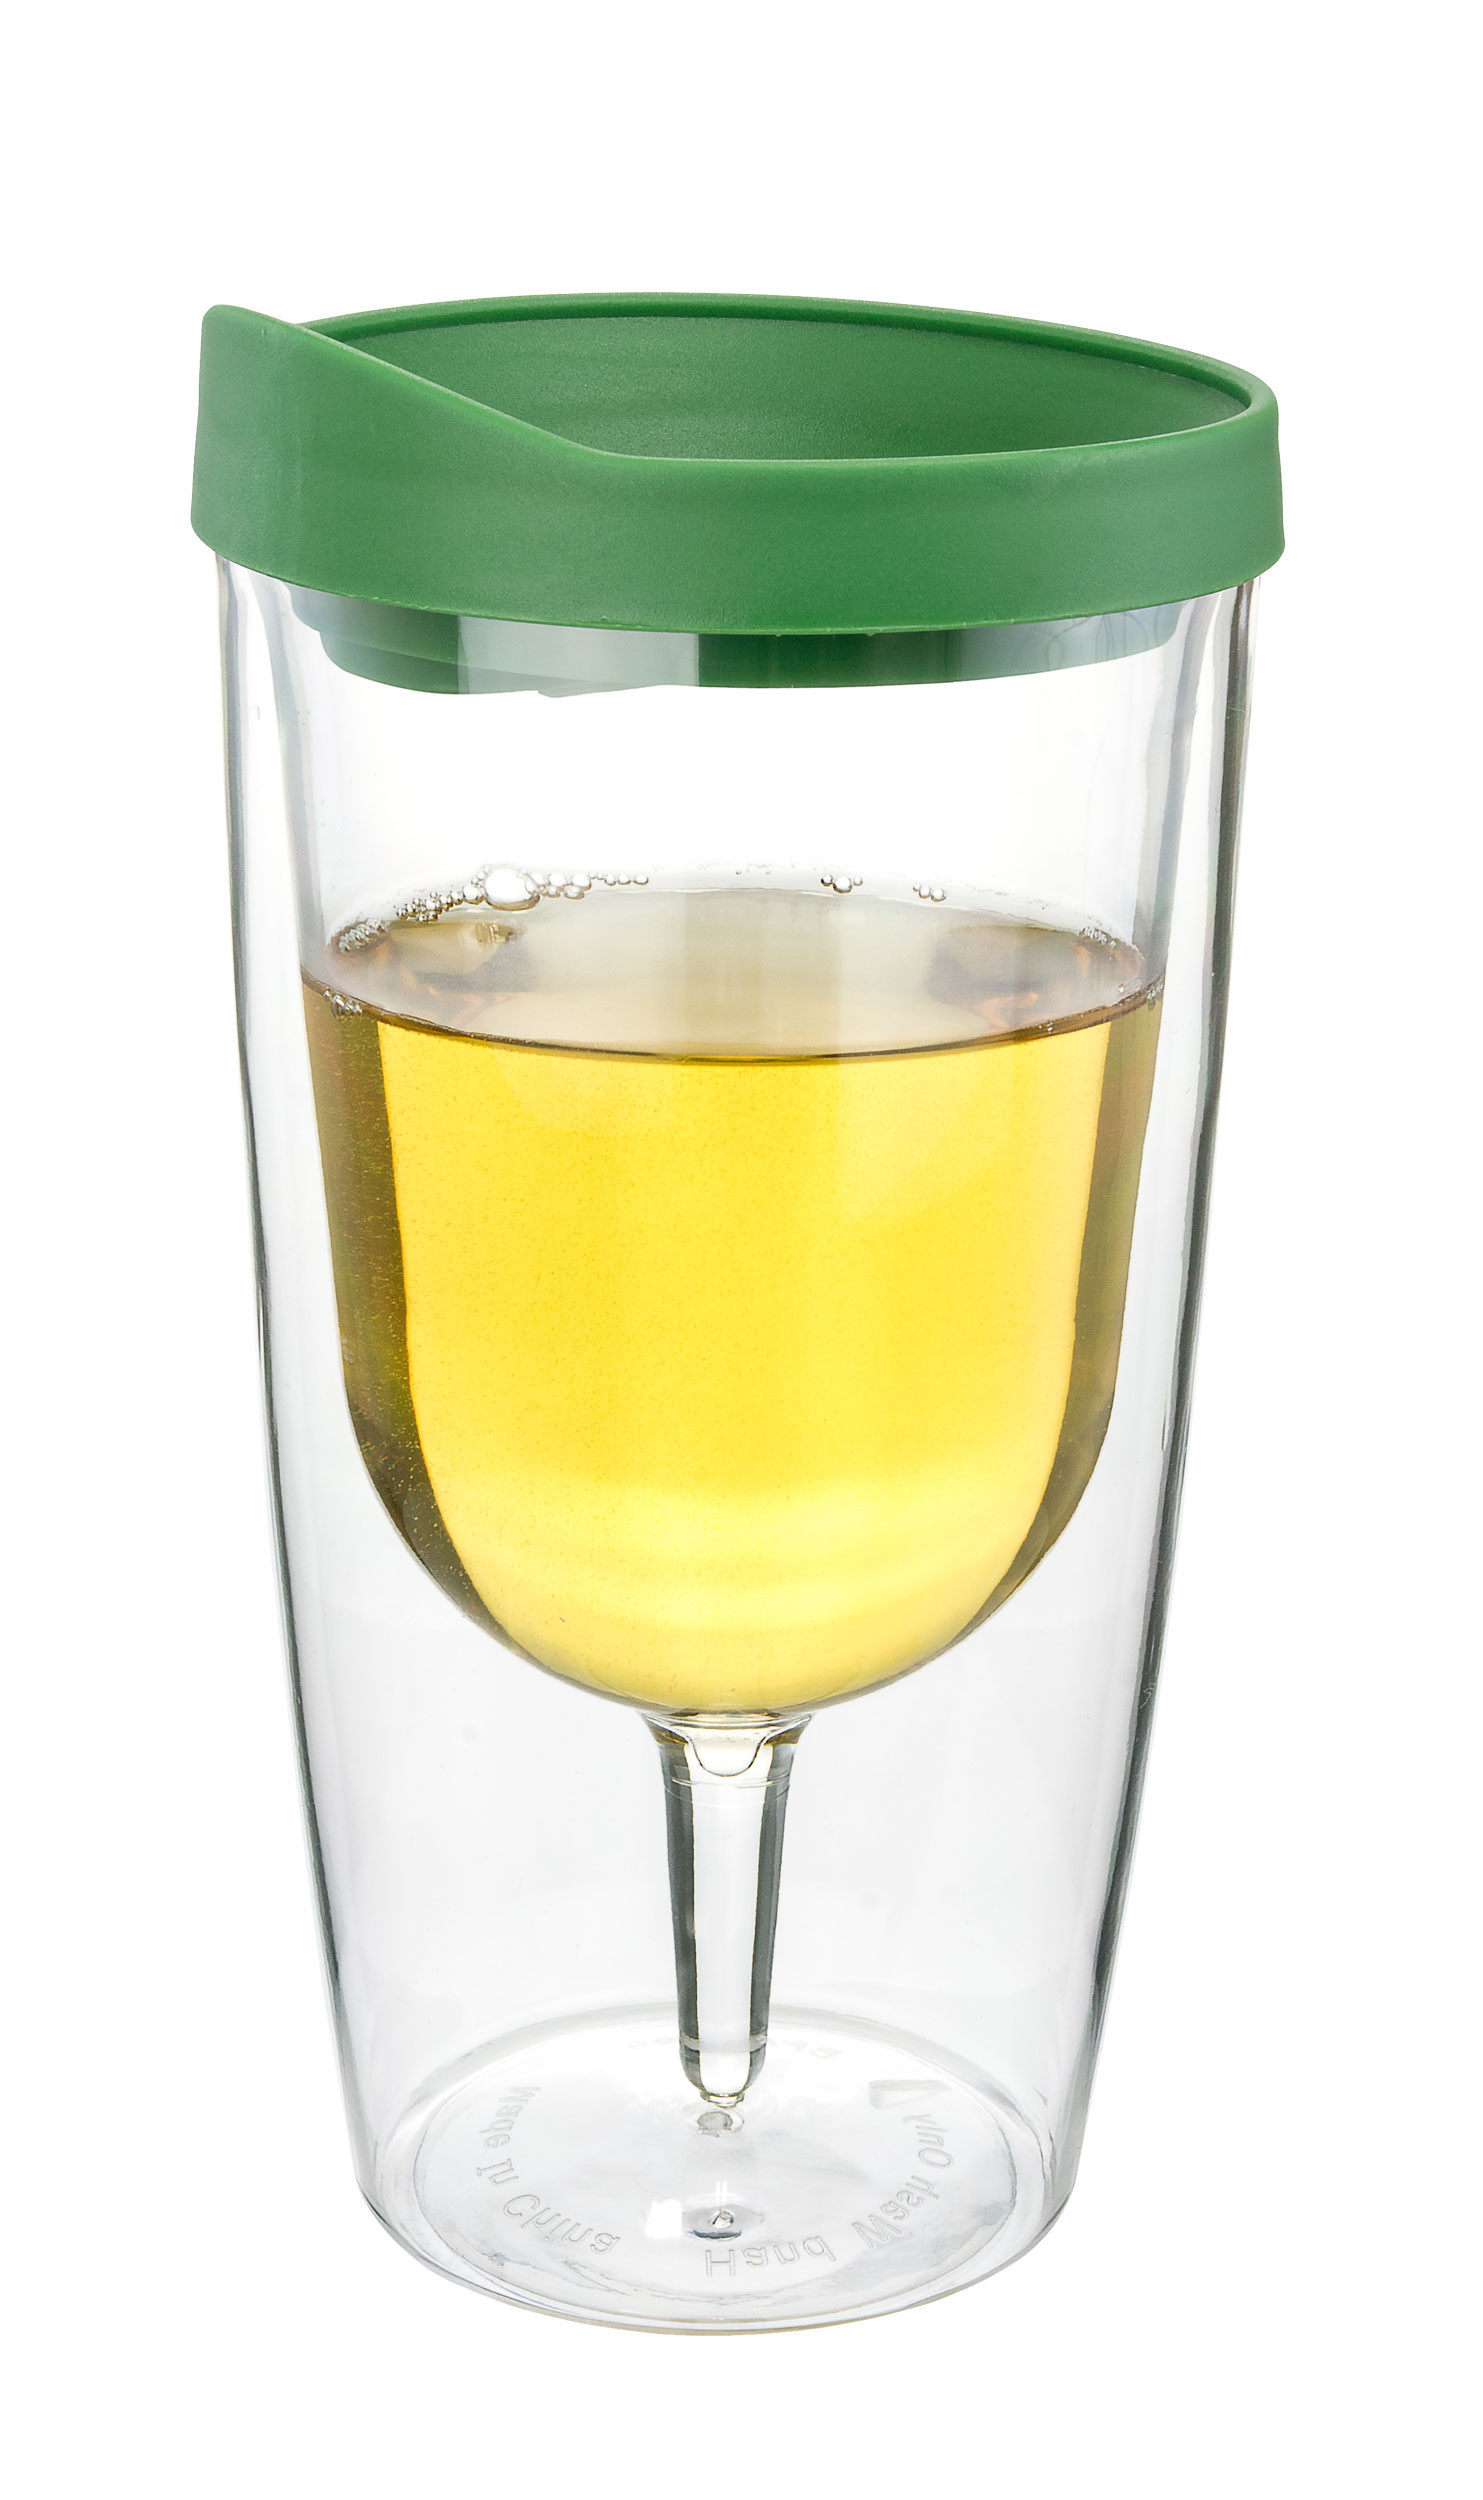 Verde Green Insulated Wine Tumbler - Double Wall Acrylic